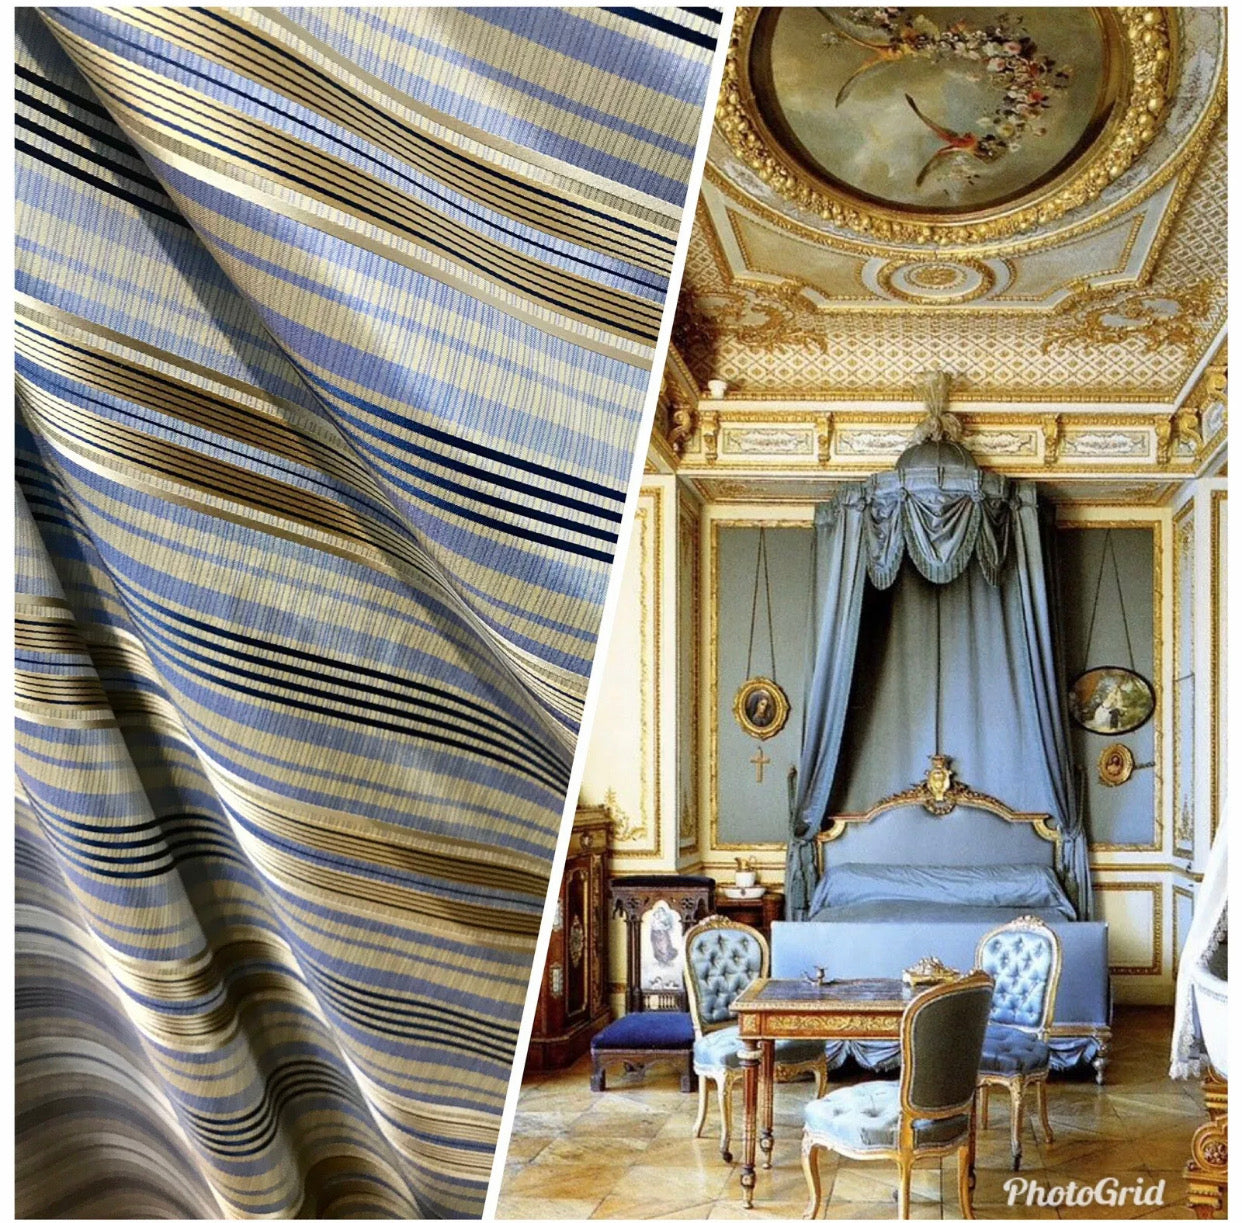 Count Levi 100% Silk Taffeta Ribbon Striped Blue and Gold Fabric